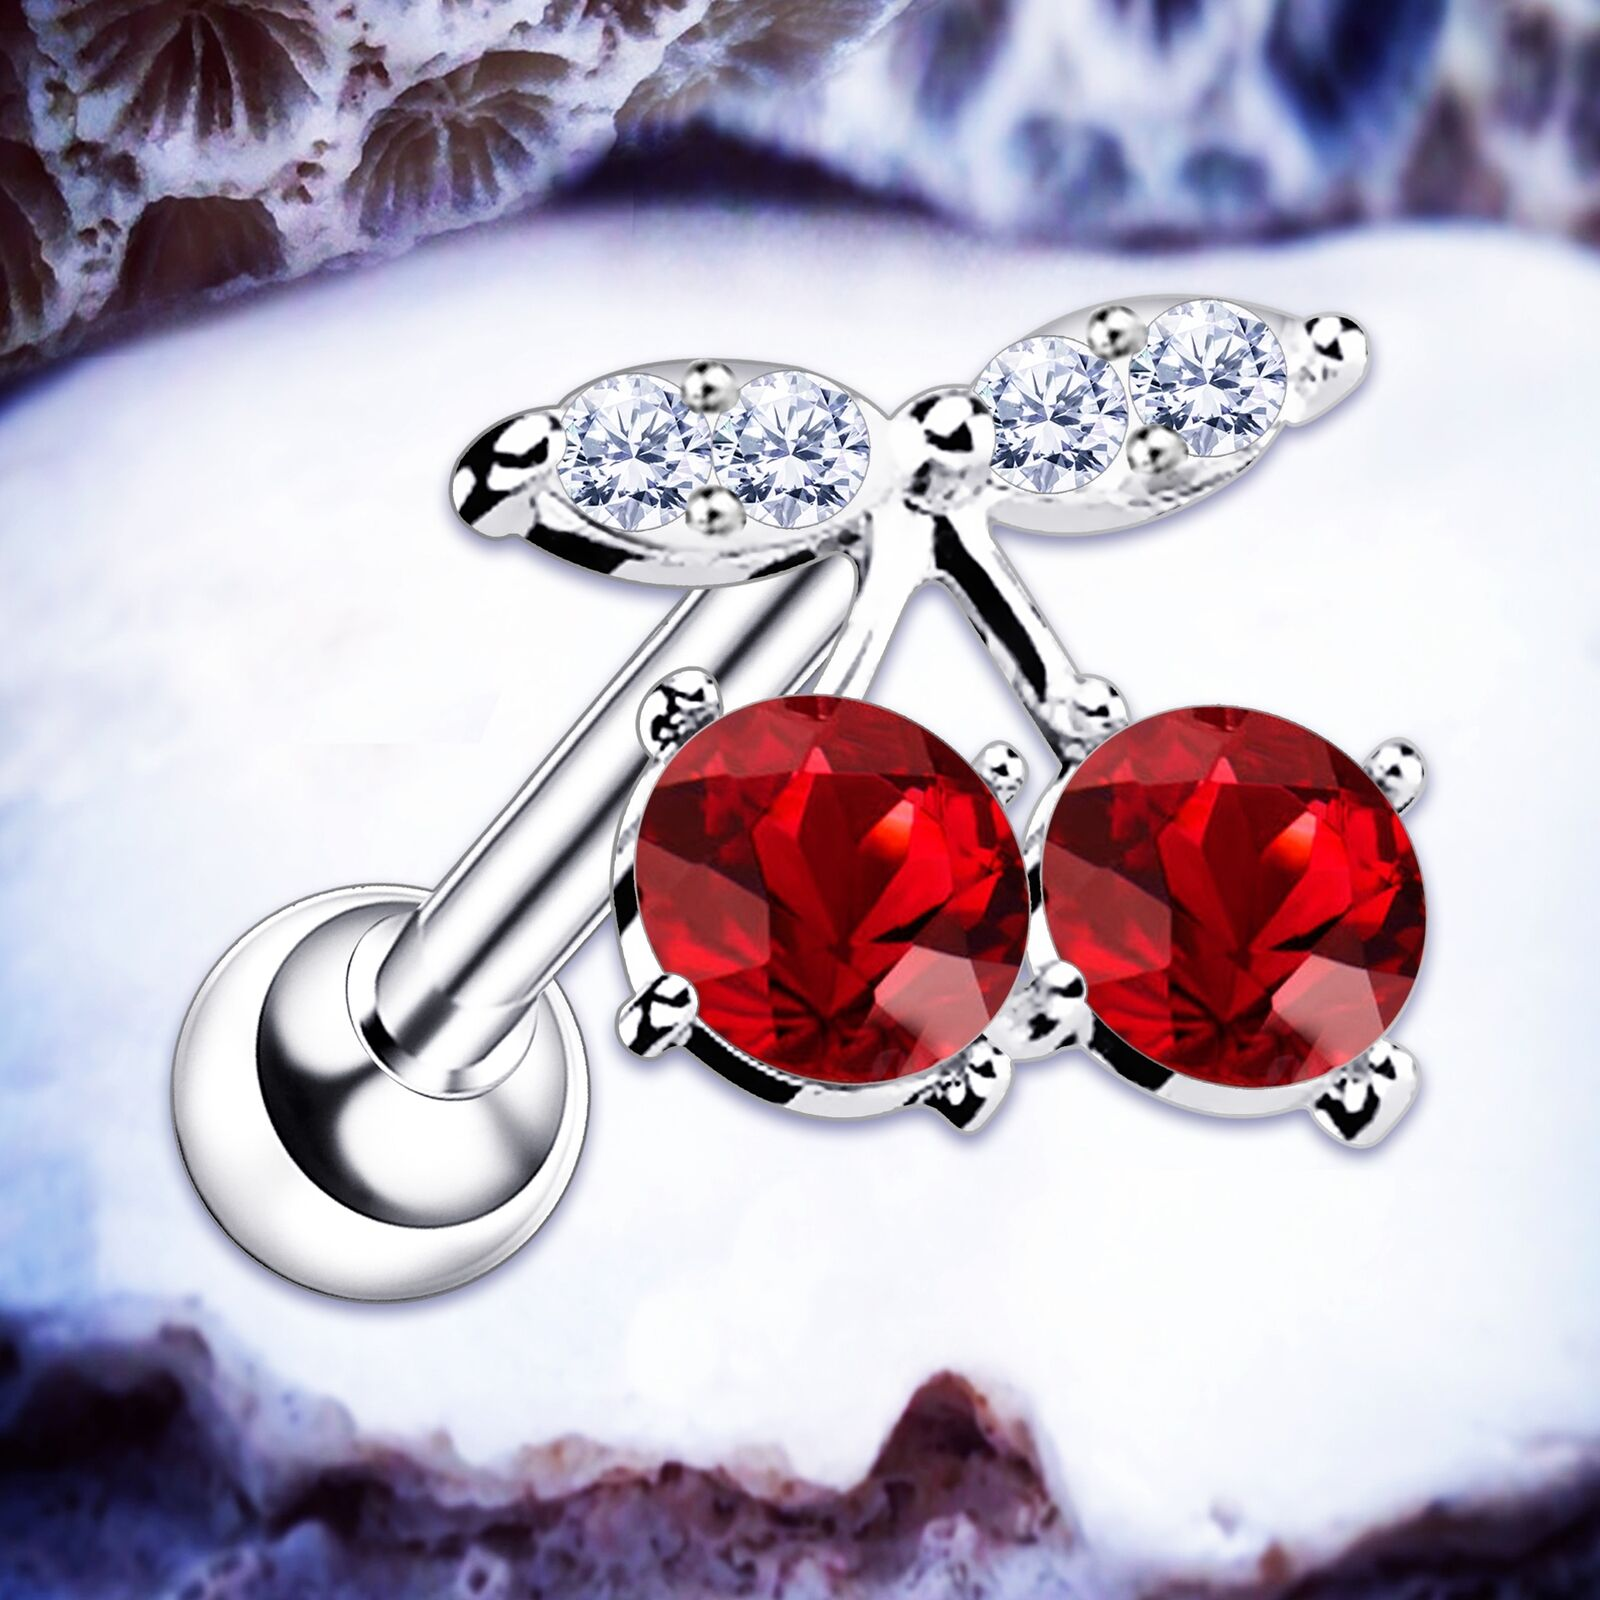 Cherry Earrings Crystal Cartilage Earring Silver Helix Studs Conch Bar Tragus UK